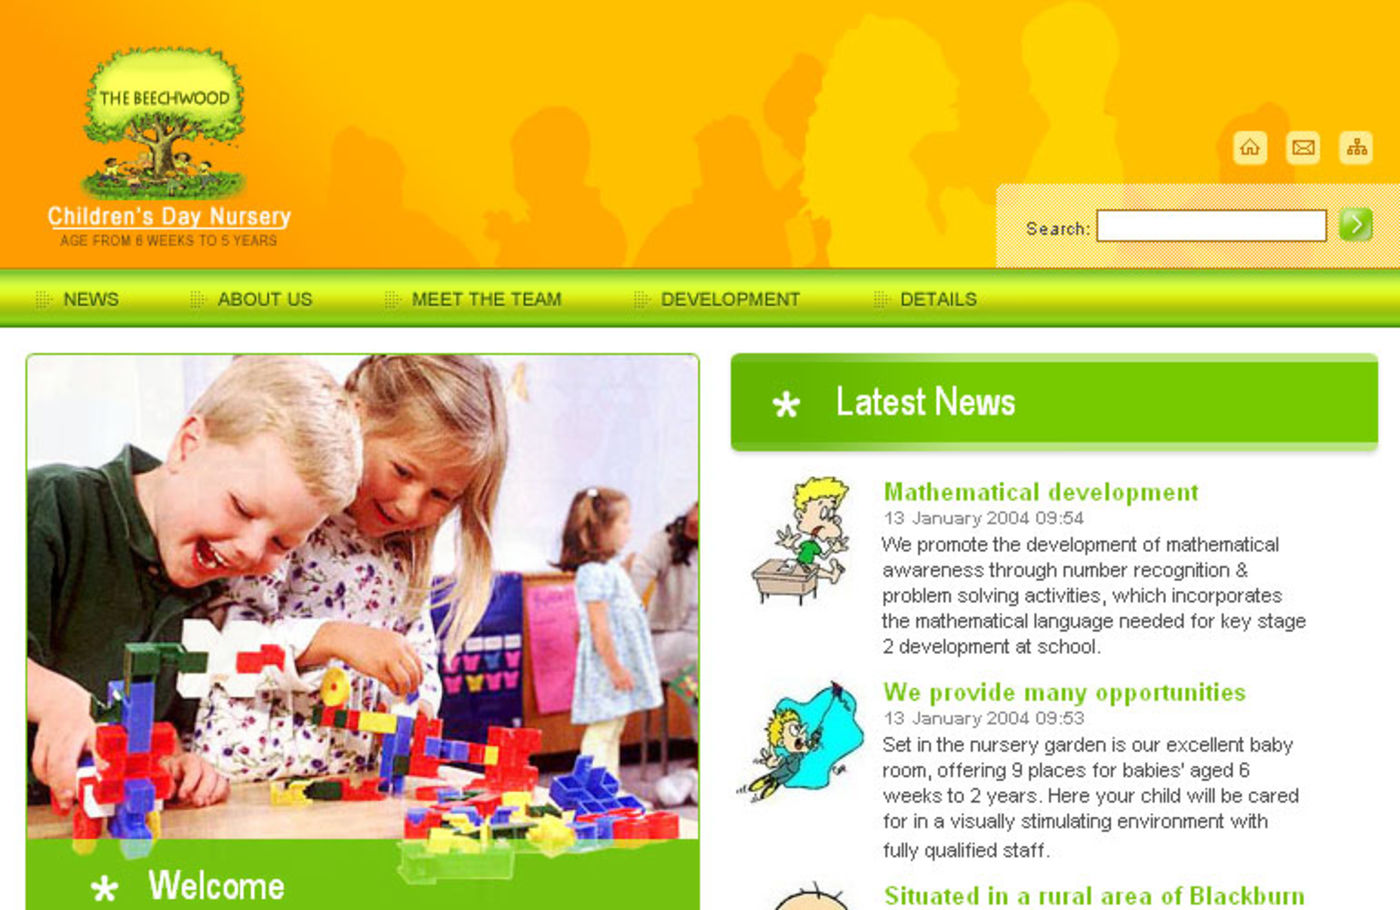 Beechwood Childrens Nursery Homepage header